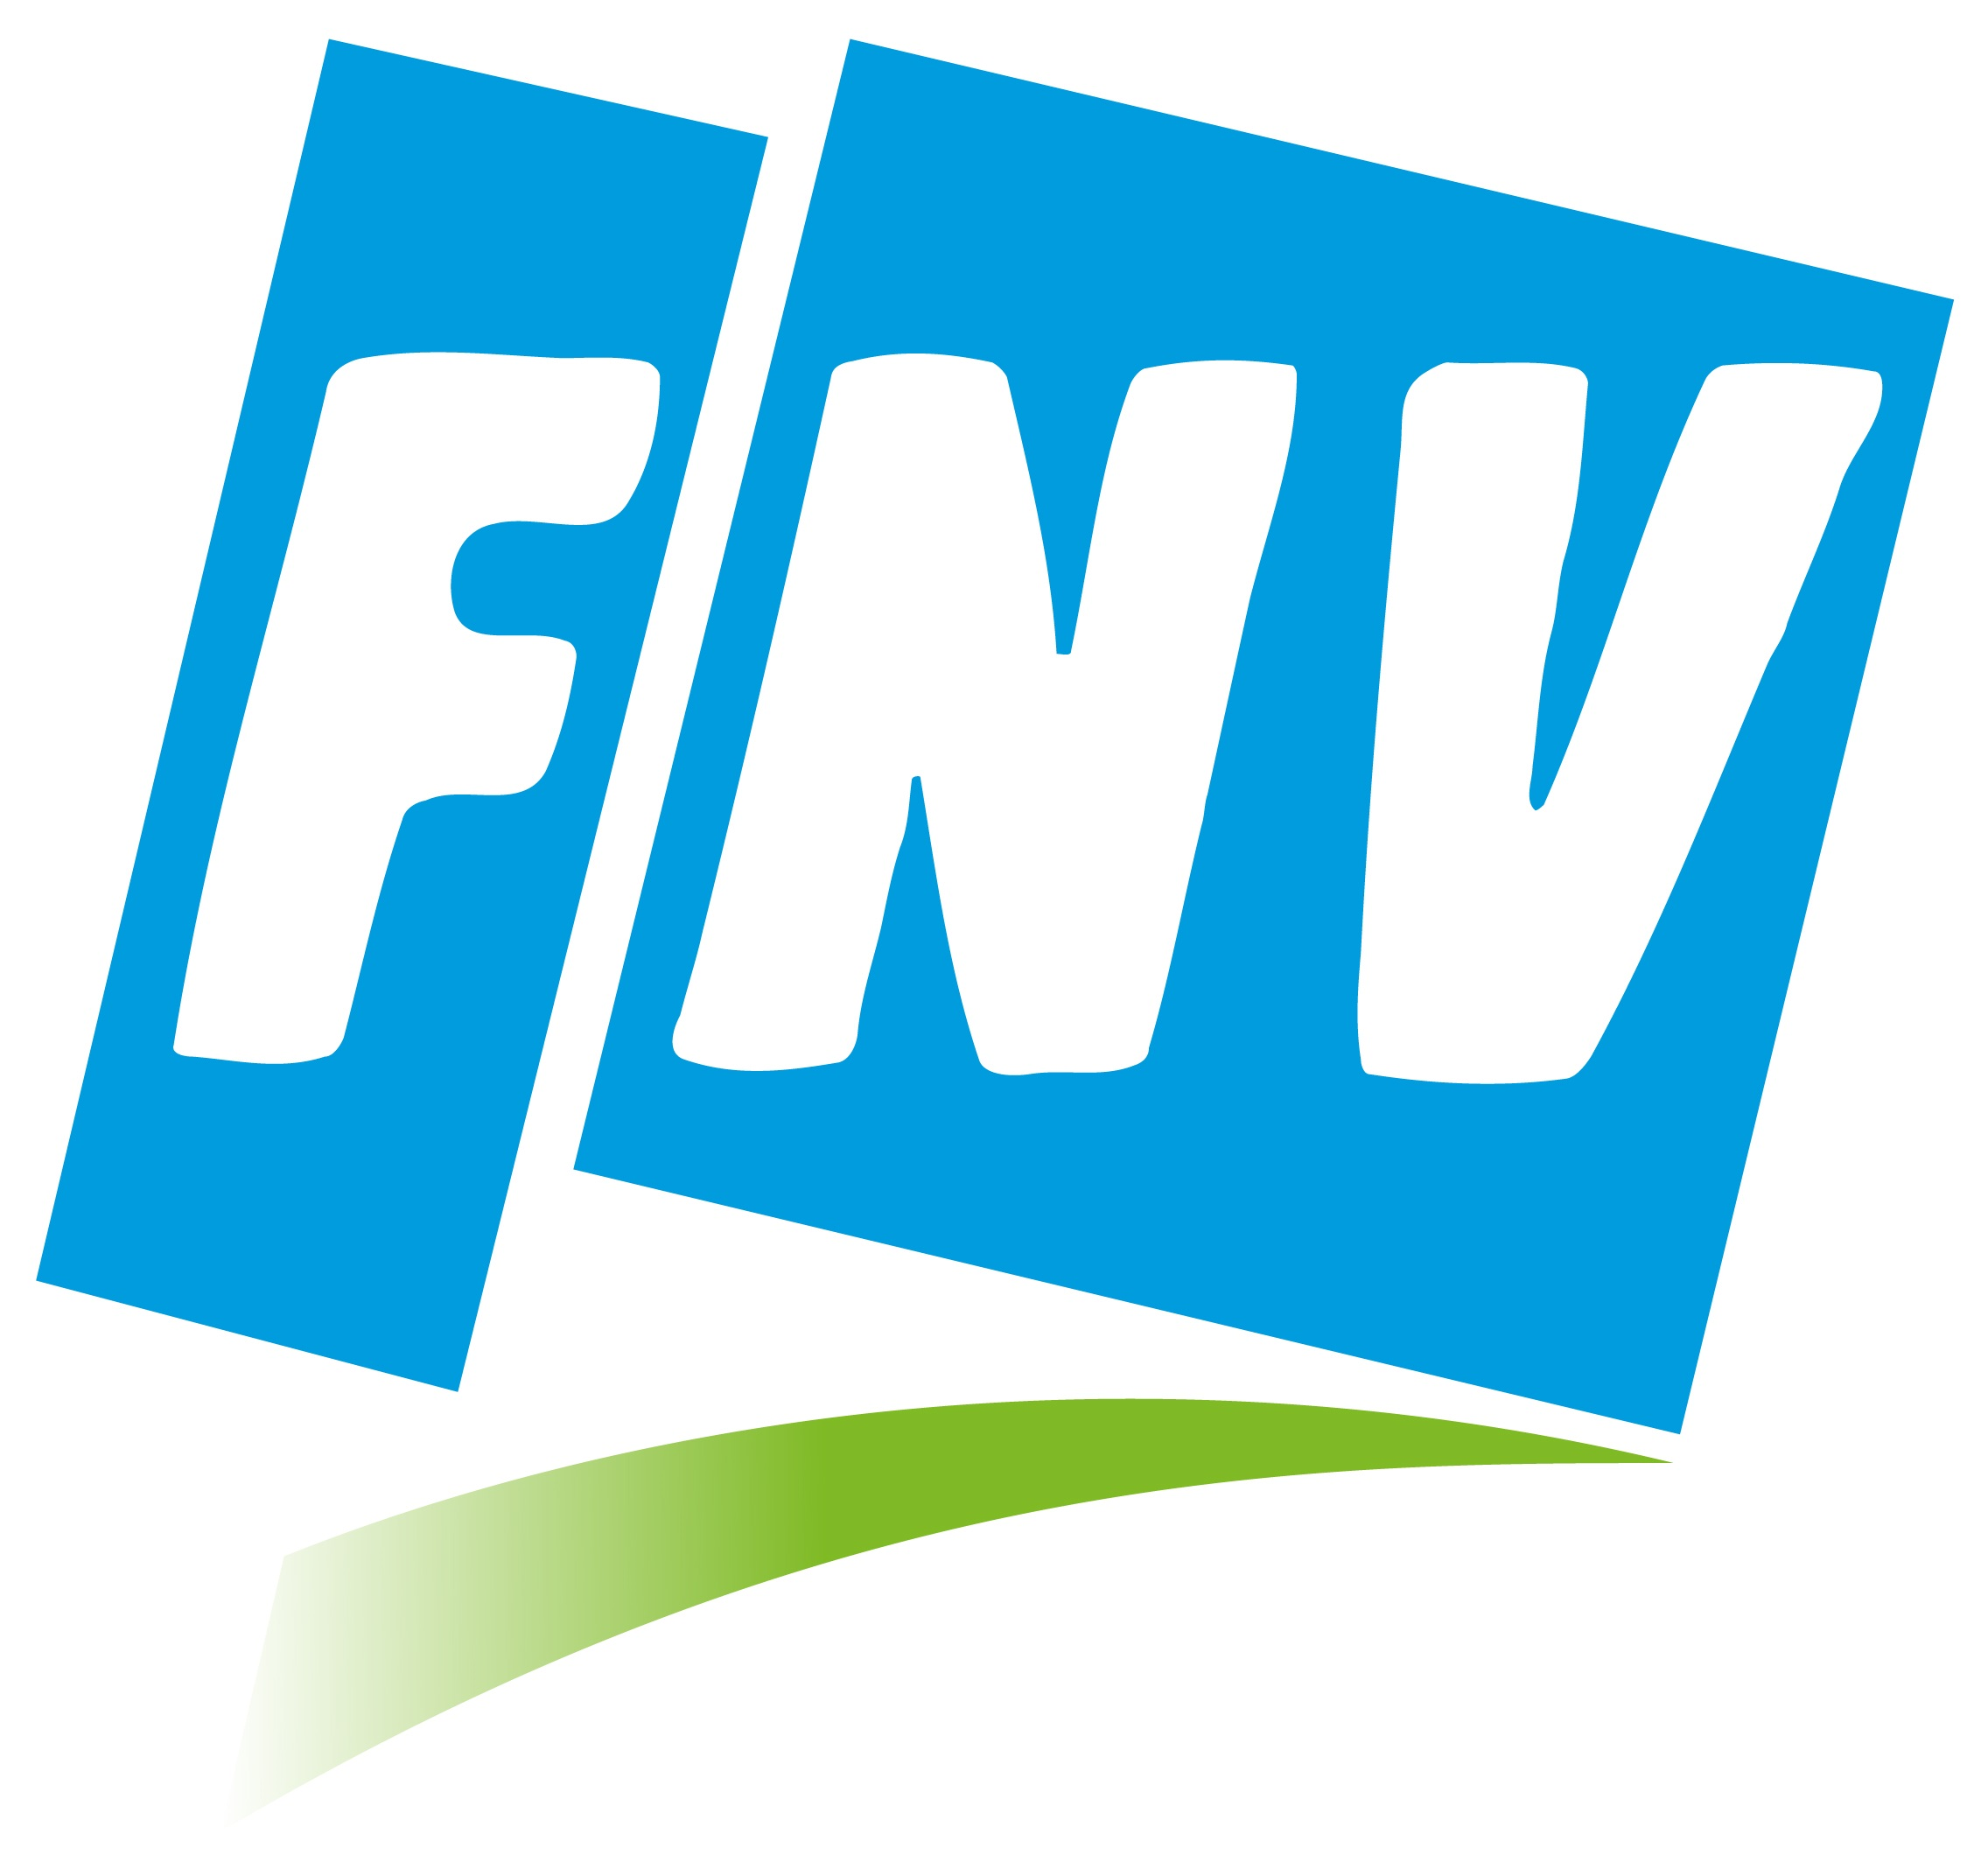 FNV LOGO FLASH